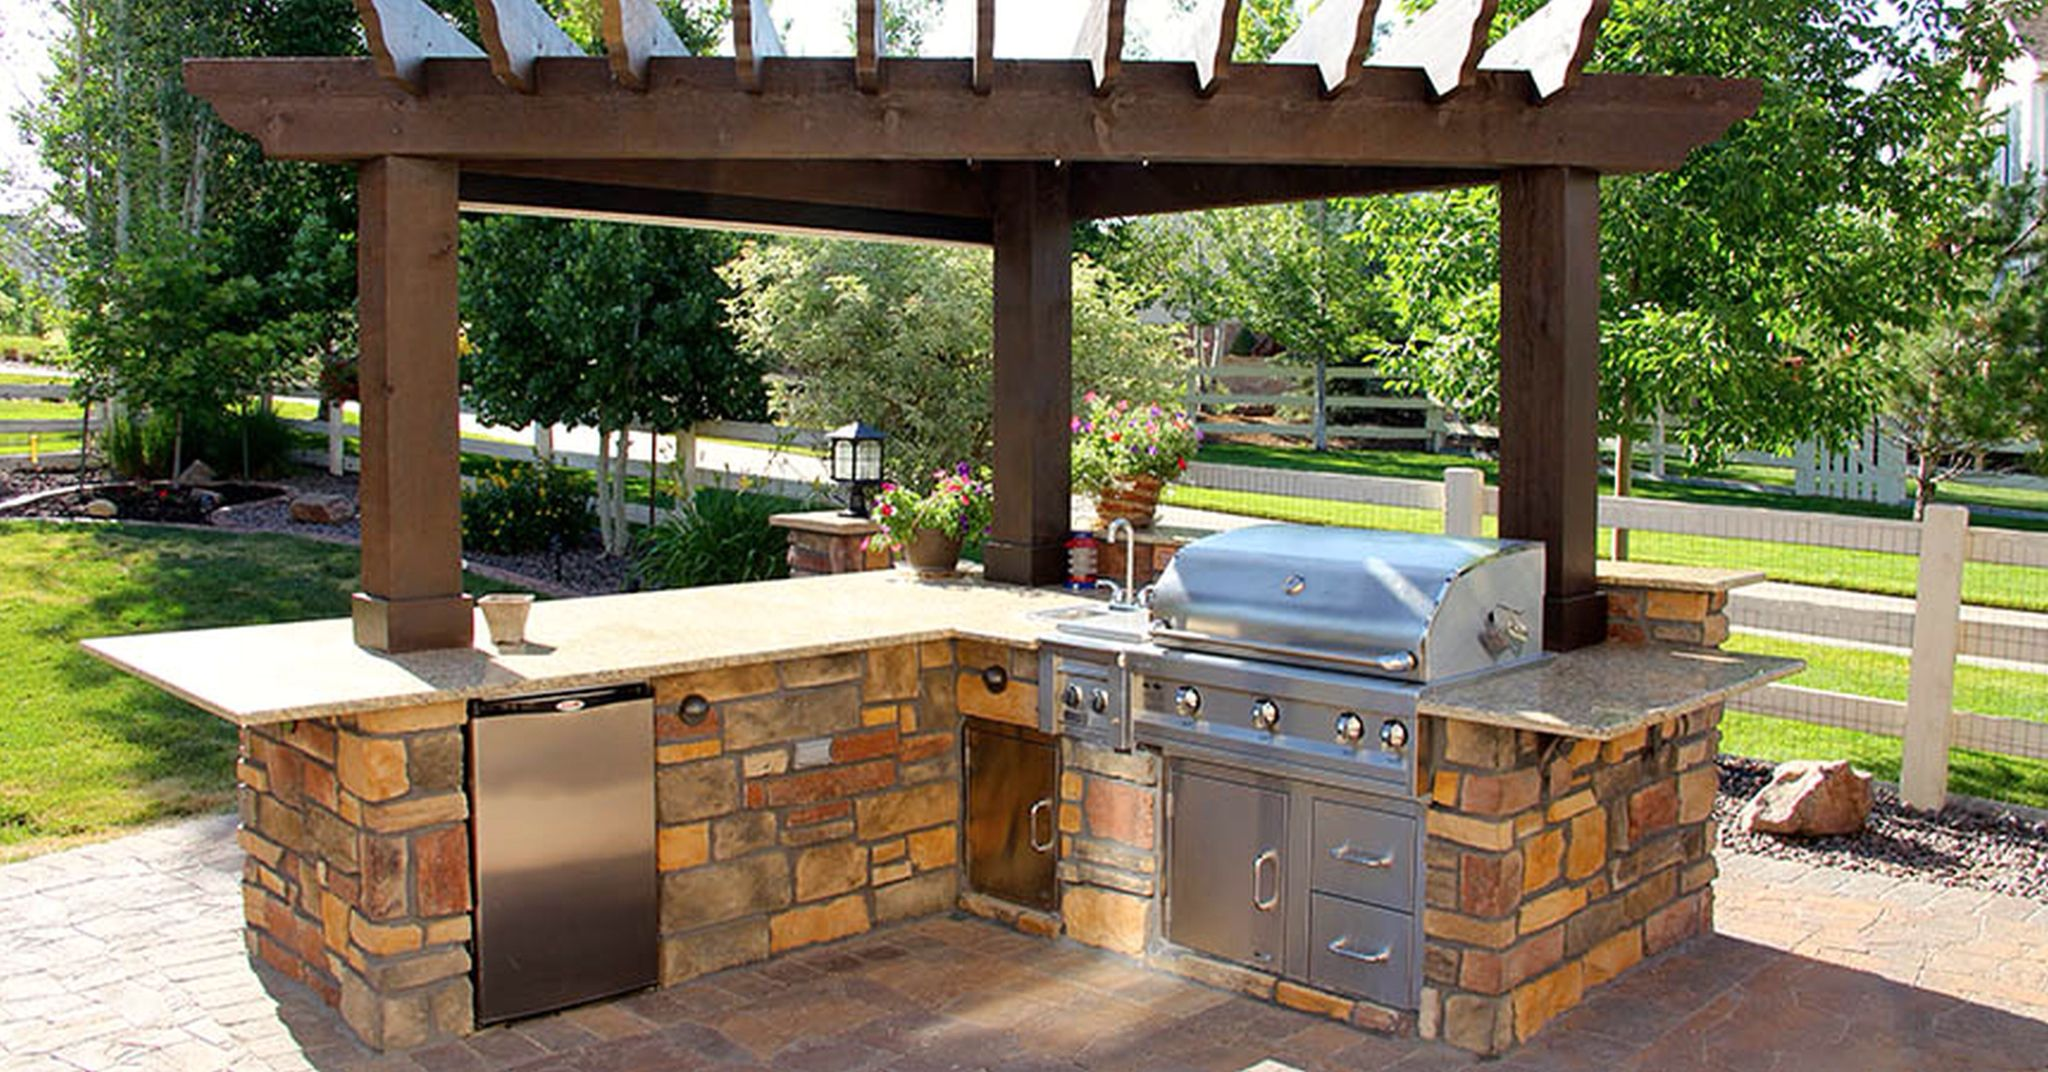 Backyard features captivating telecomwizkitchen planner adorable patio outdoor set awesome simple rustic outdoor kitchen designs cheap kitchen design ideas